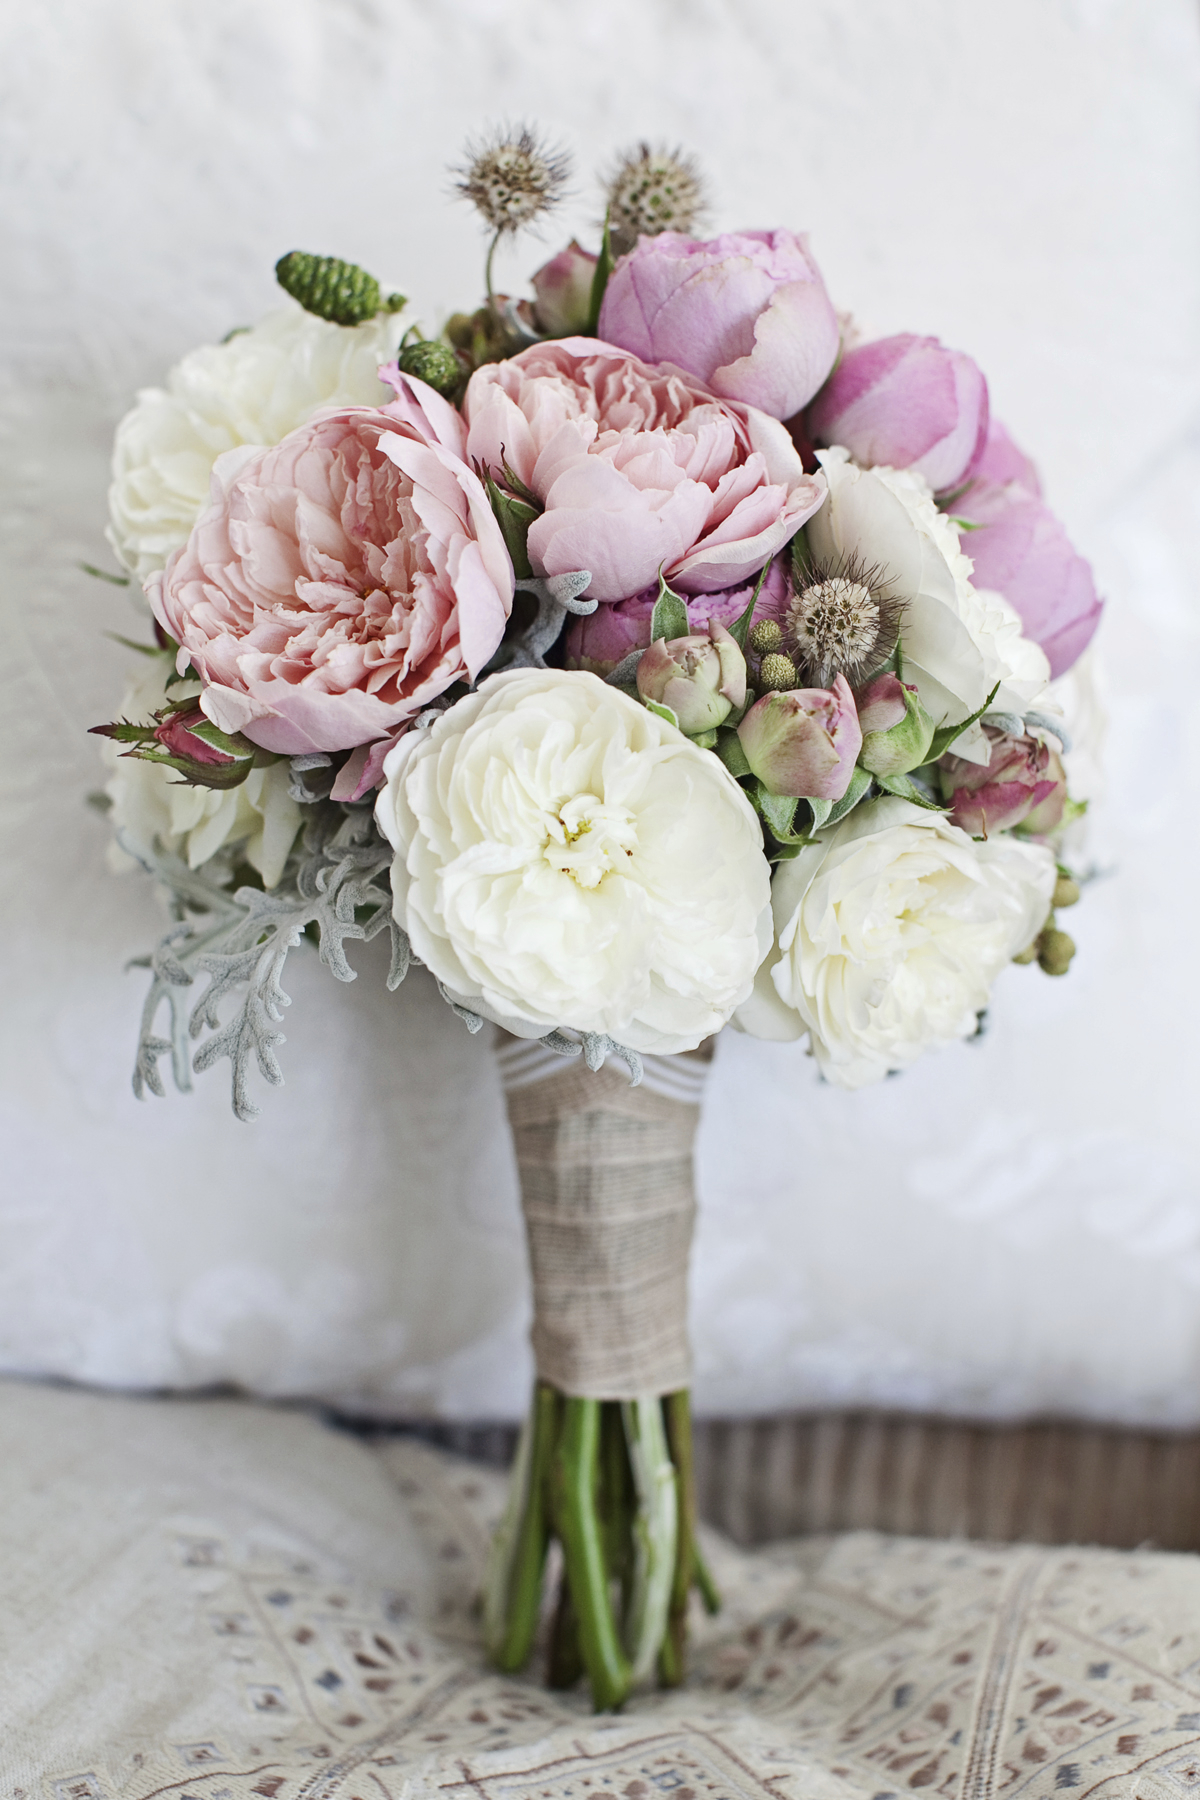 Beautiful-Wedding-Bouquet-000020037555_Medium.jpg